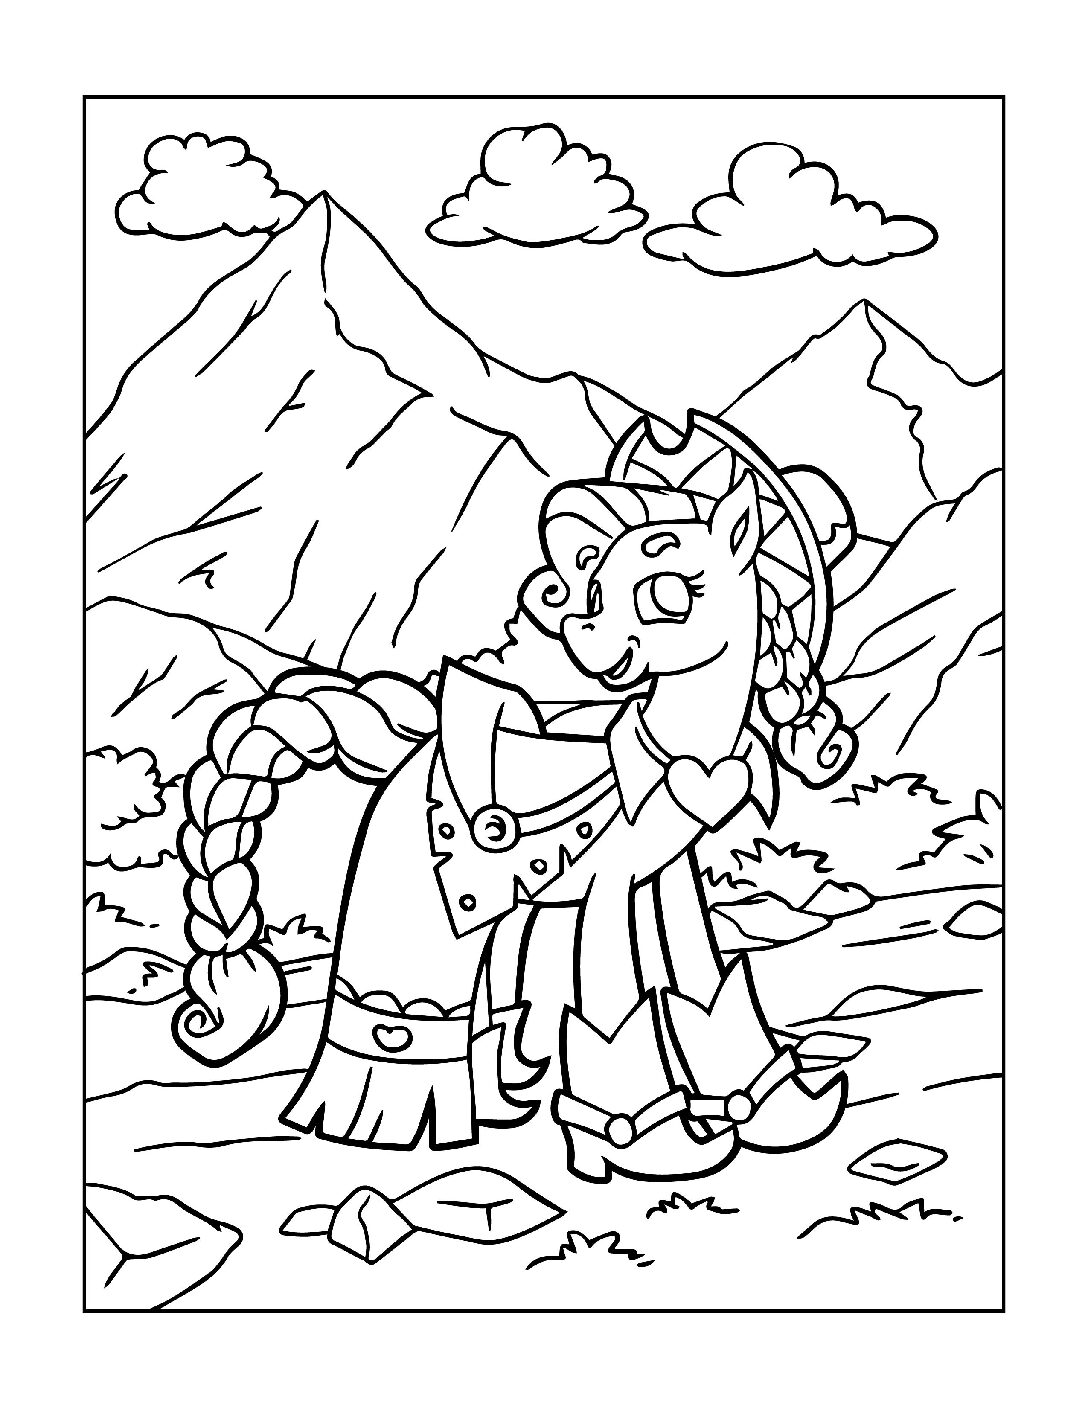 Coloring-Pages-Unicorns-9-pdf Free Printable Unicorn Colouring Pages